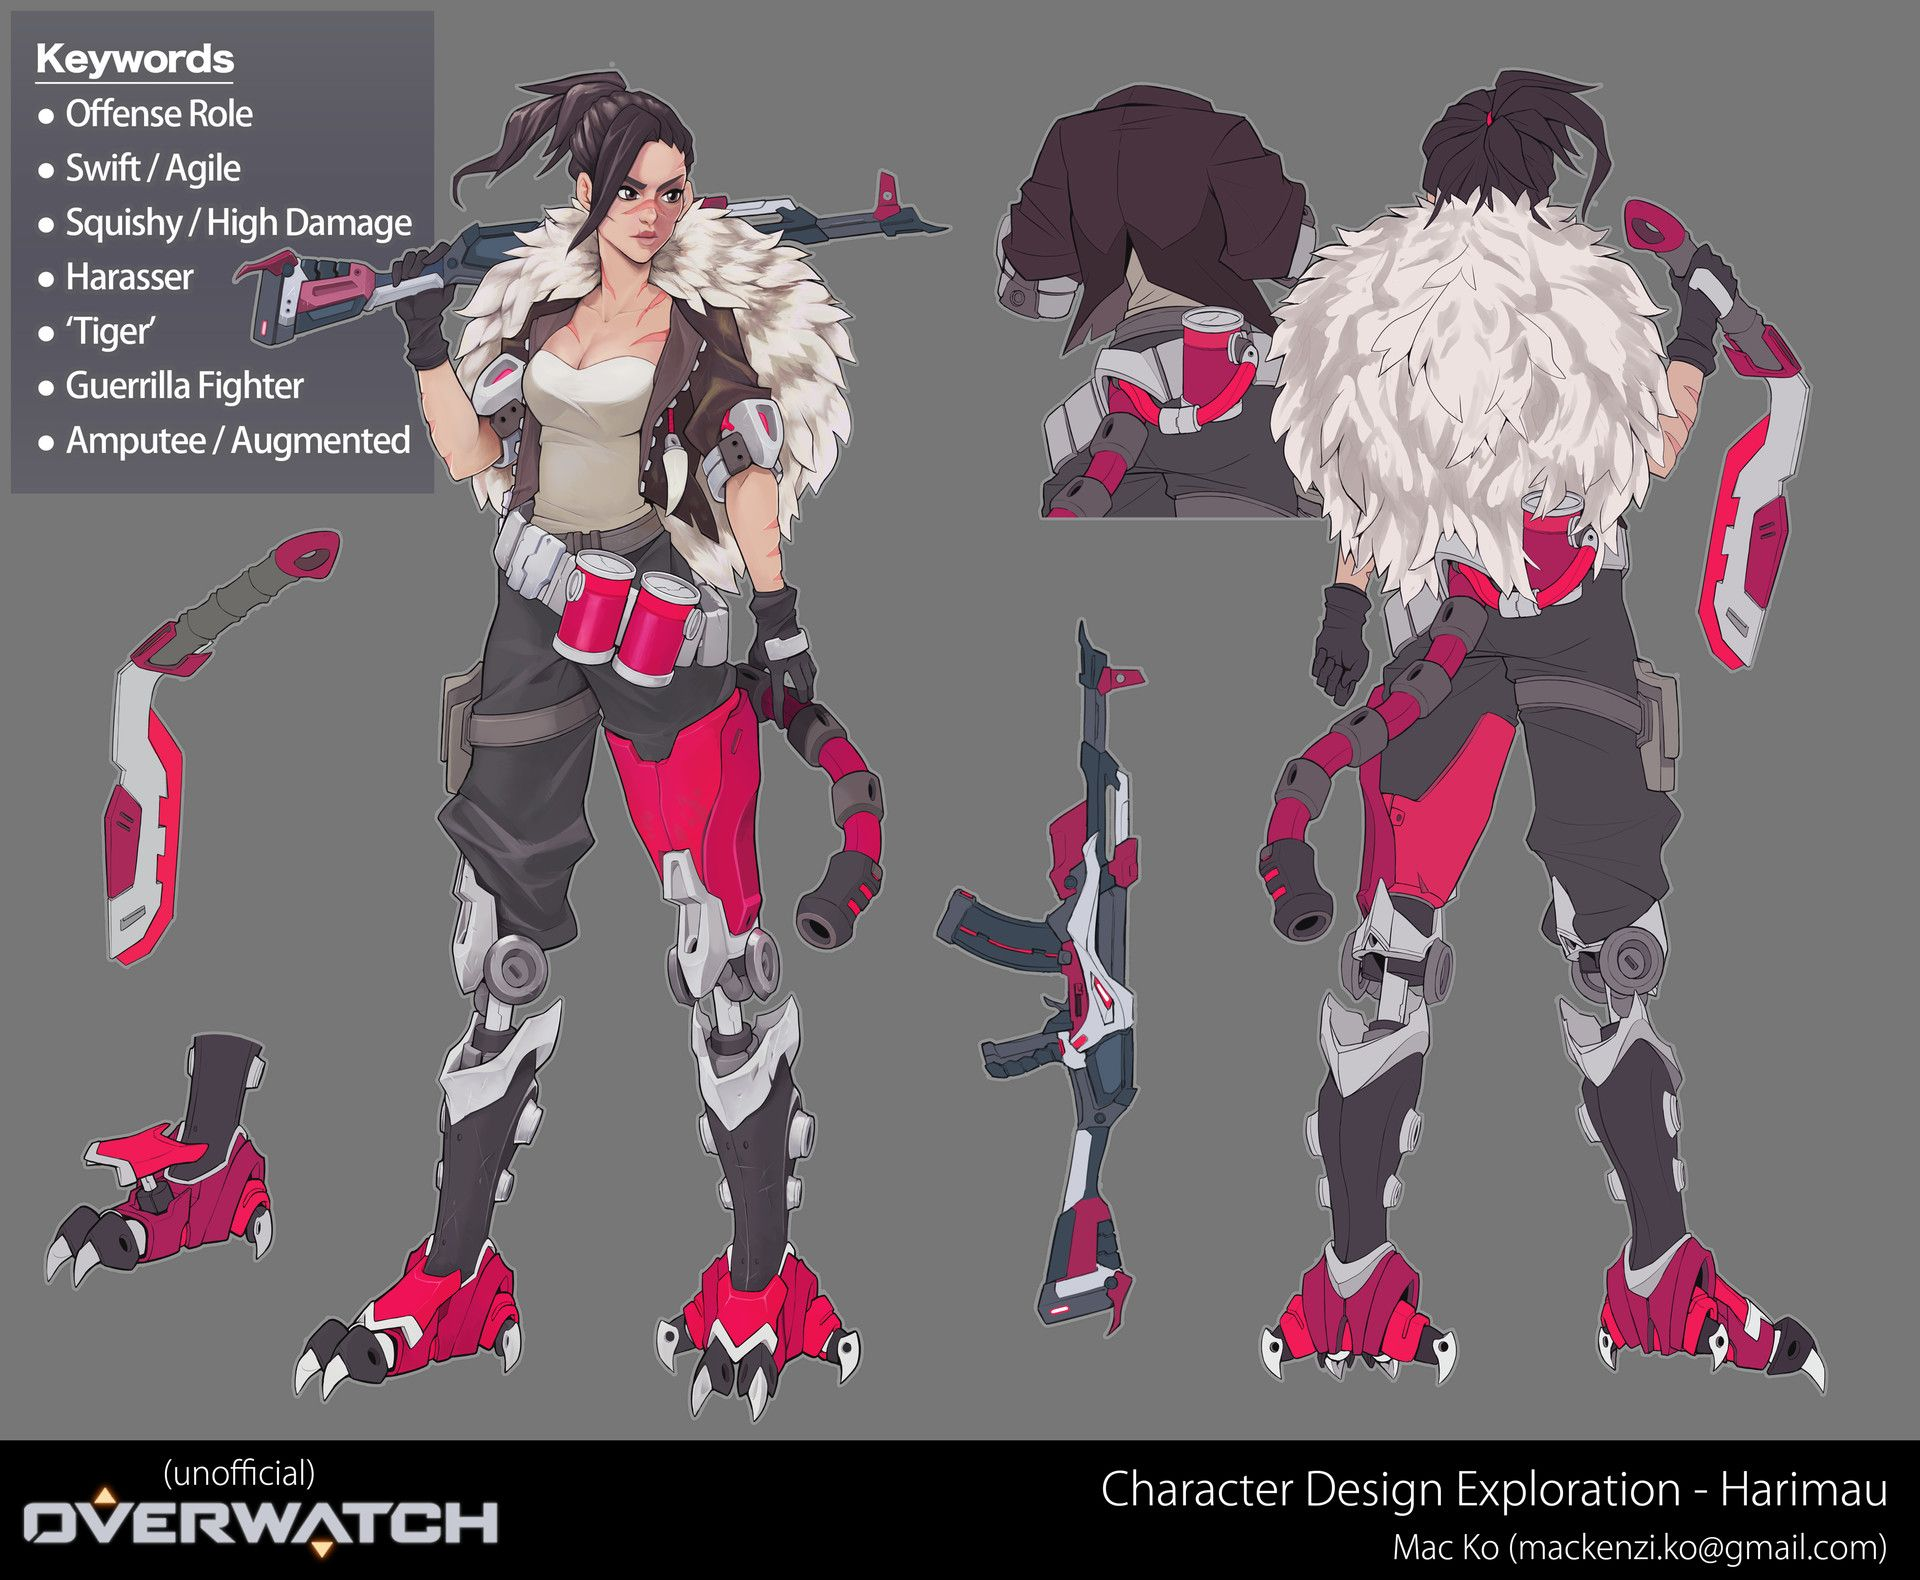 ArtStation - Overwatch Original Character Concept Excercise, Mac Ko